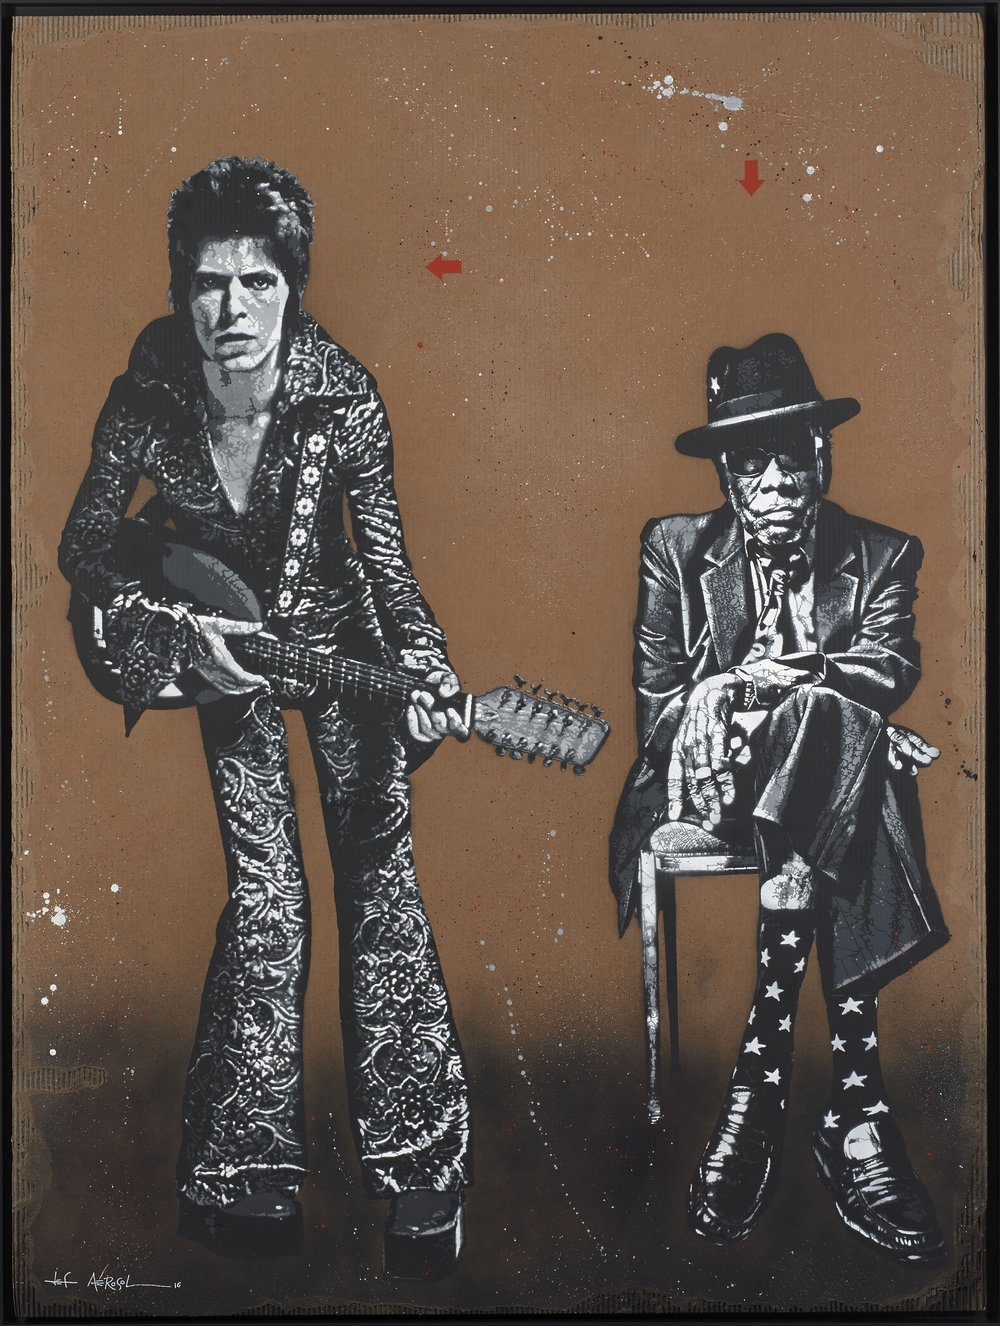 Lot 63 Jef  Aerosol  Ziggy et John Lee 2016 I ©Artcurial  JEF AEROSOL French - Born 1957 Ziggy & John Lee - 2016 Stencil and spray paint on cardboard Height : 200 Width: 150 cm Estimation 10 000 - 15 000 €